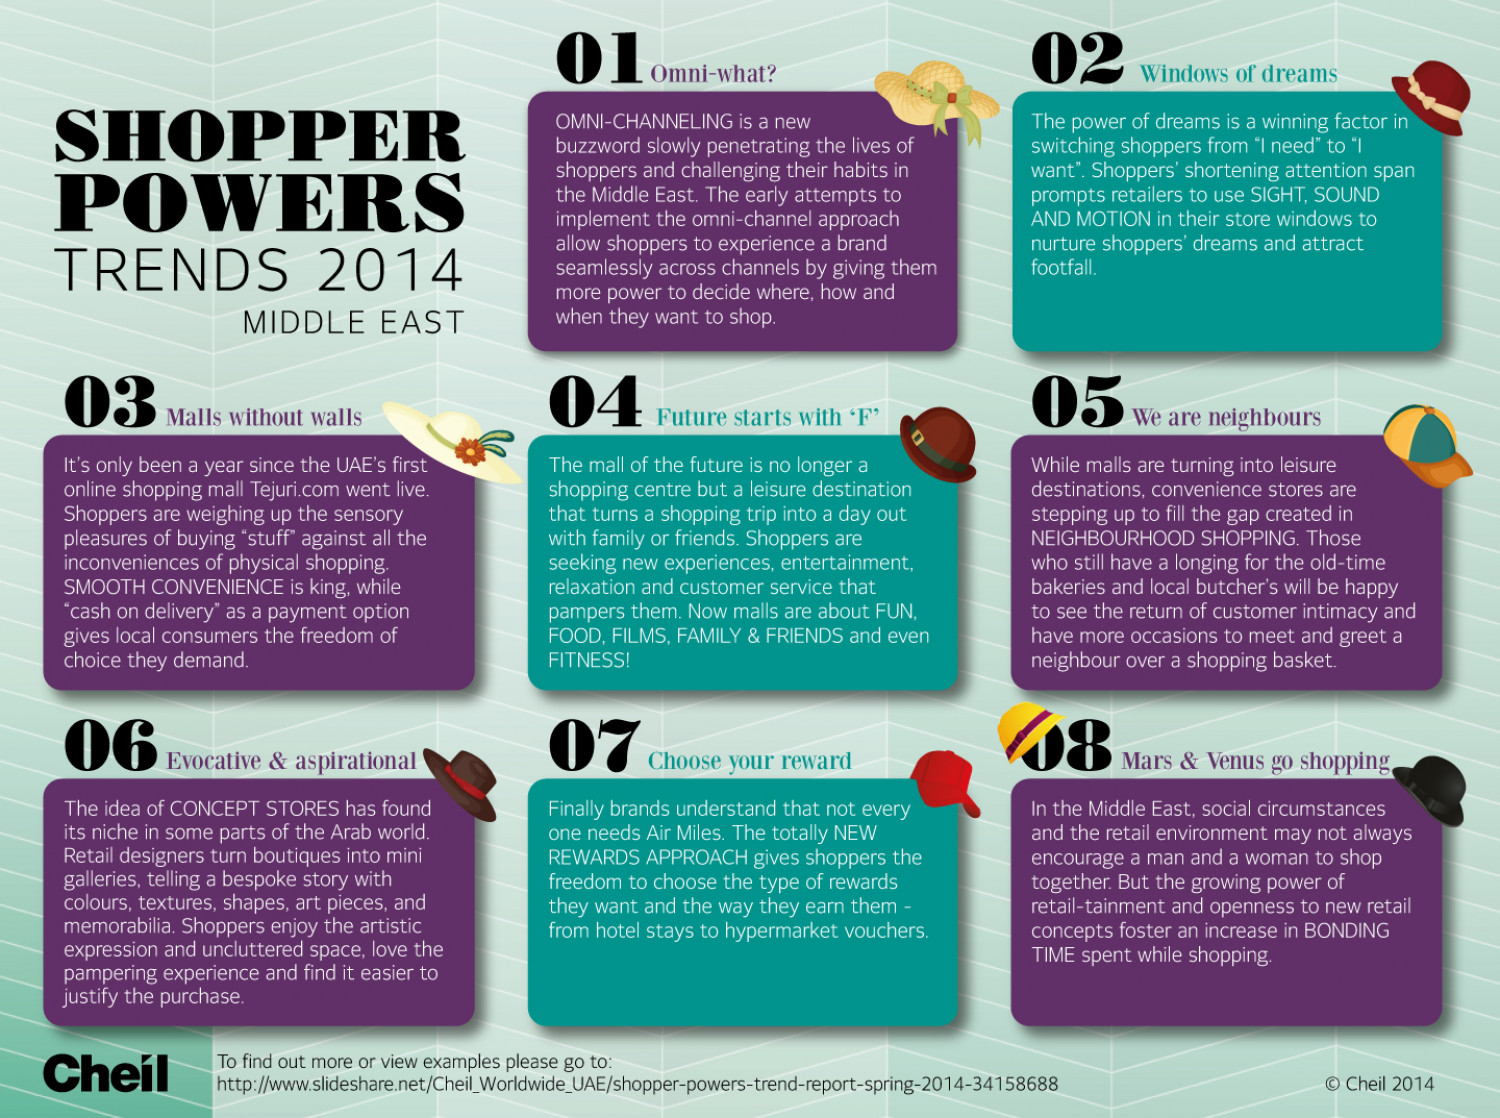 Cheil's Middle East Shopper Powers Trends 2014 Infographic